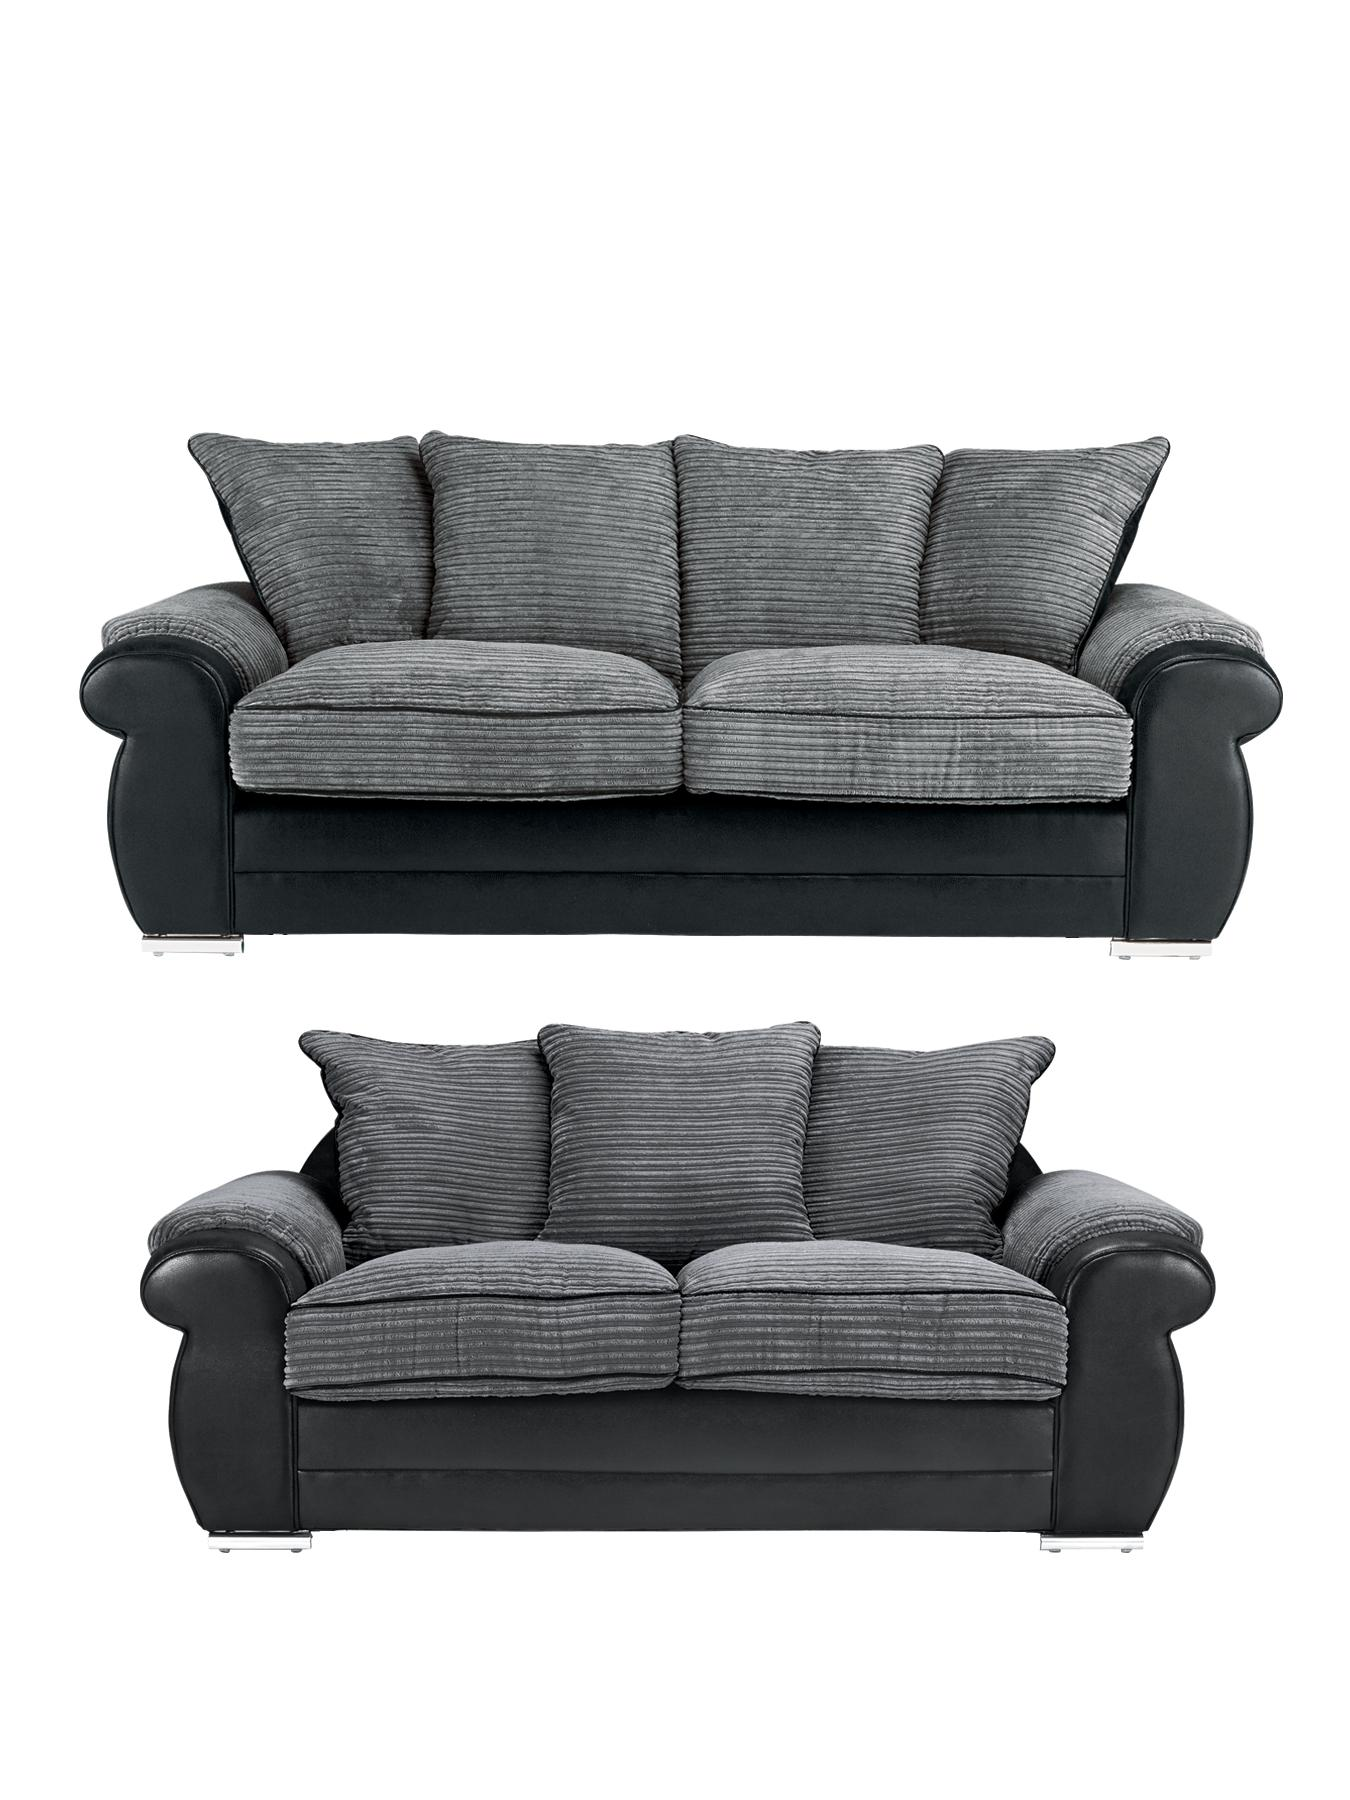 Aura 3-Seater plus 2-Seater Sofa Set (Buy and SAVE!) - Black, Black,Chocolate